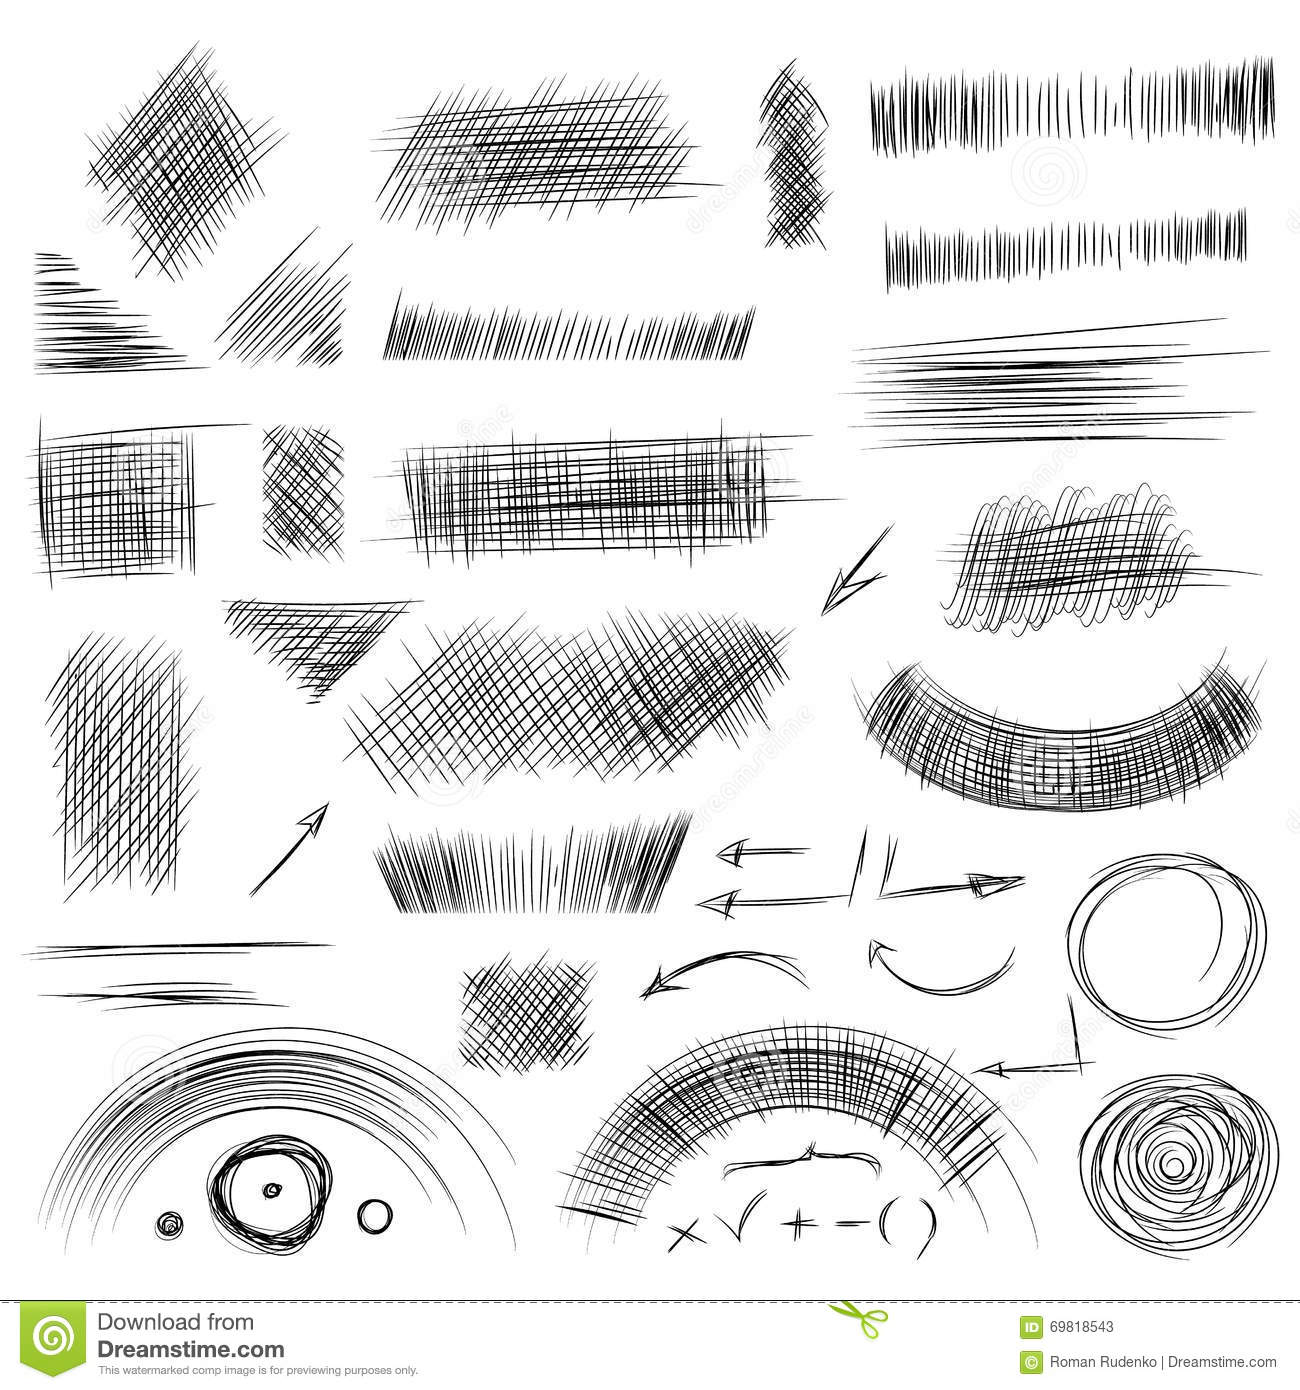 Drawing Lines Between Html Elements : Pencil shading doodle stock photography cartoondealer